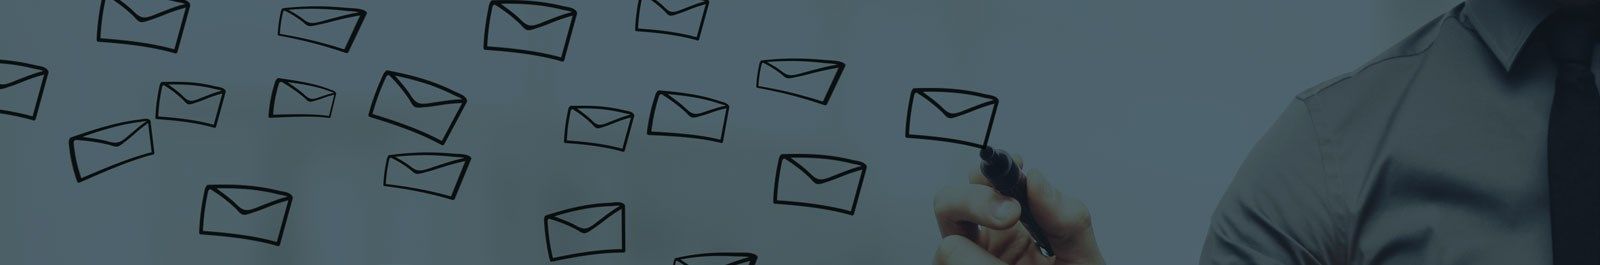 Header image - concept of sending communications